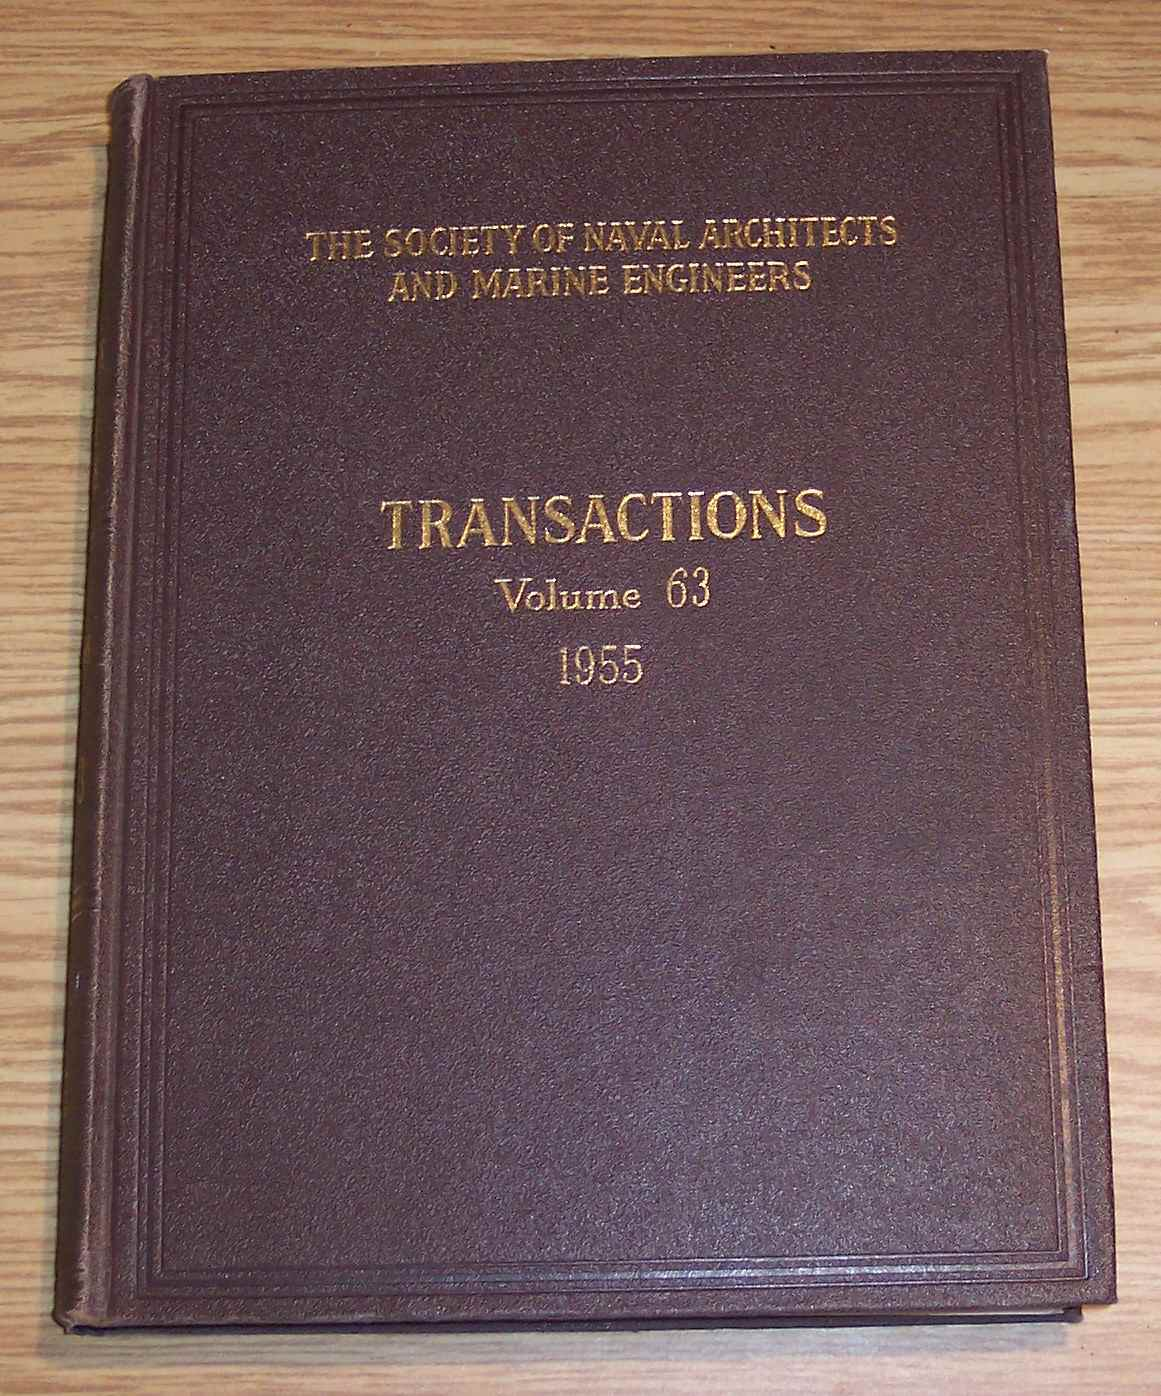 Image for The Society of Naval Architects and Marine Engineers Transactions Volume 63 1955